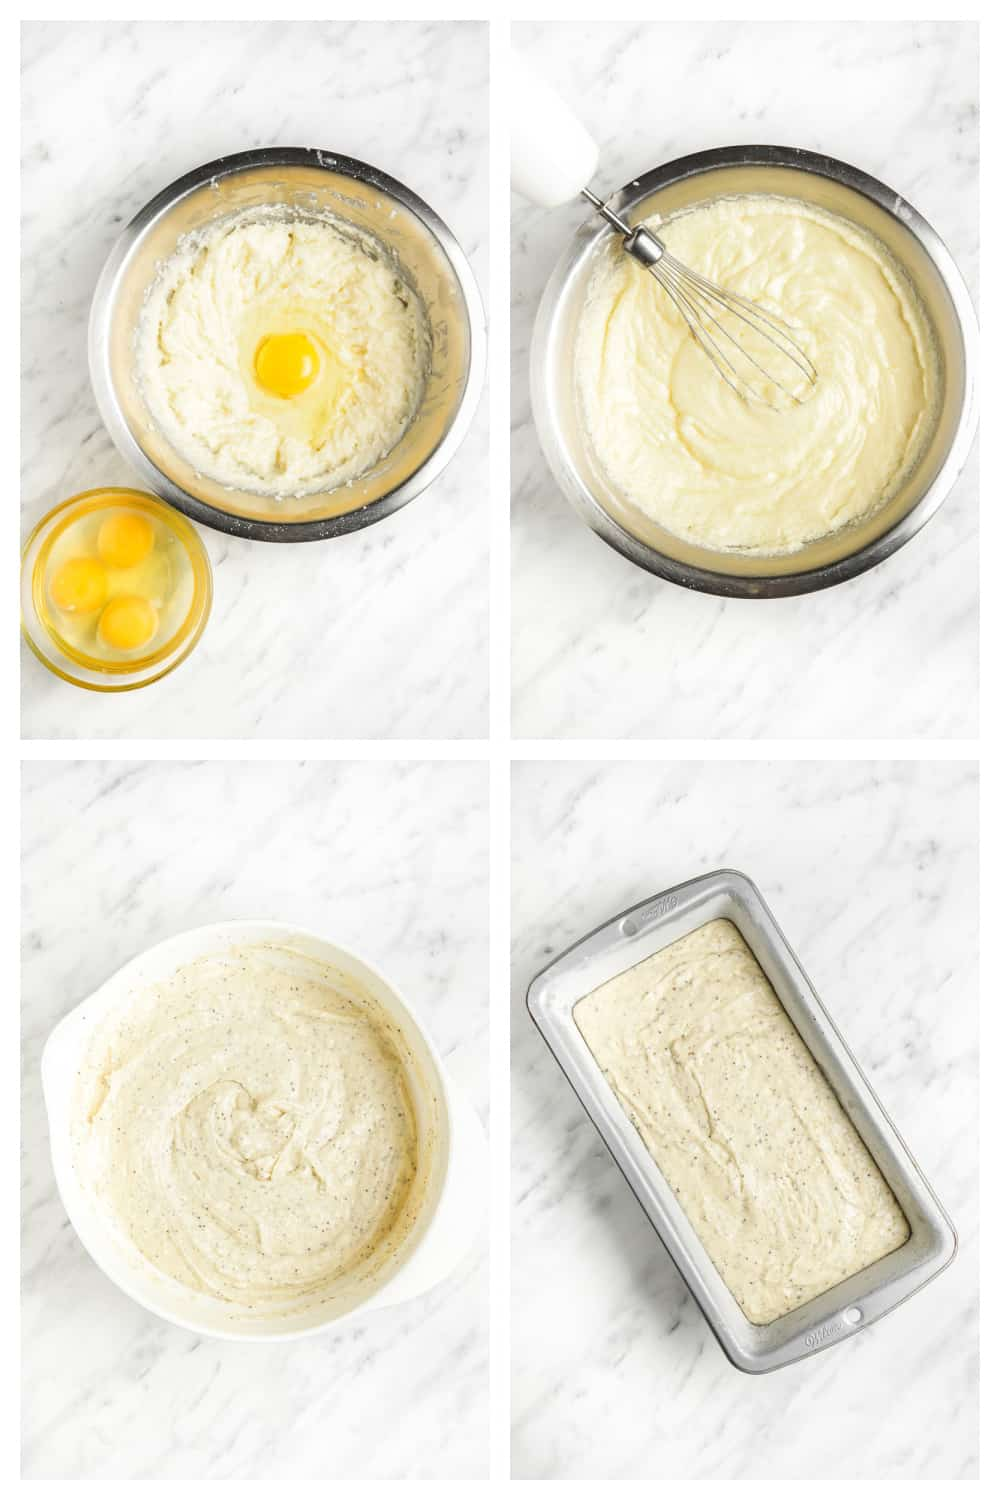 step by step photos of making the lemon poppy seed bread